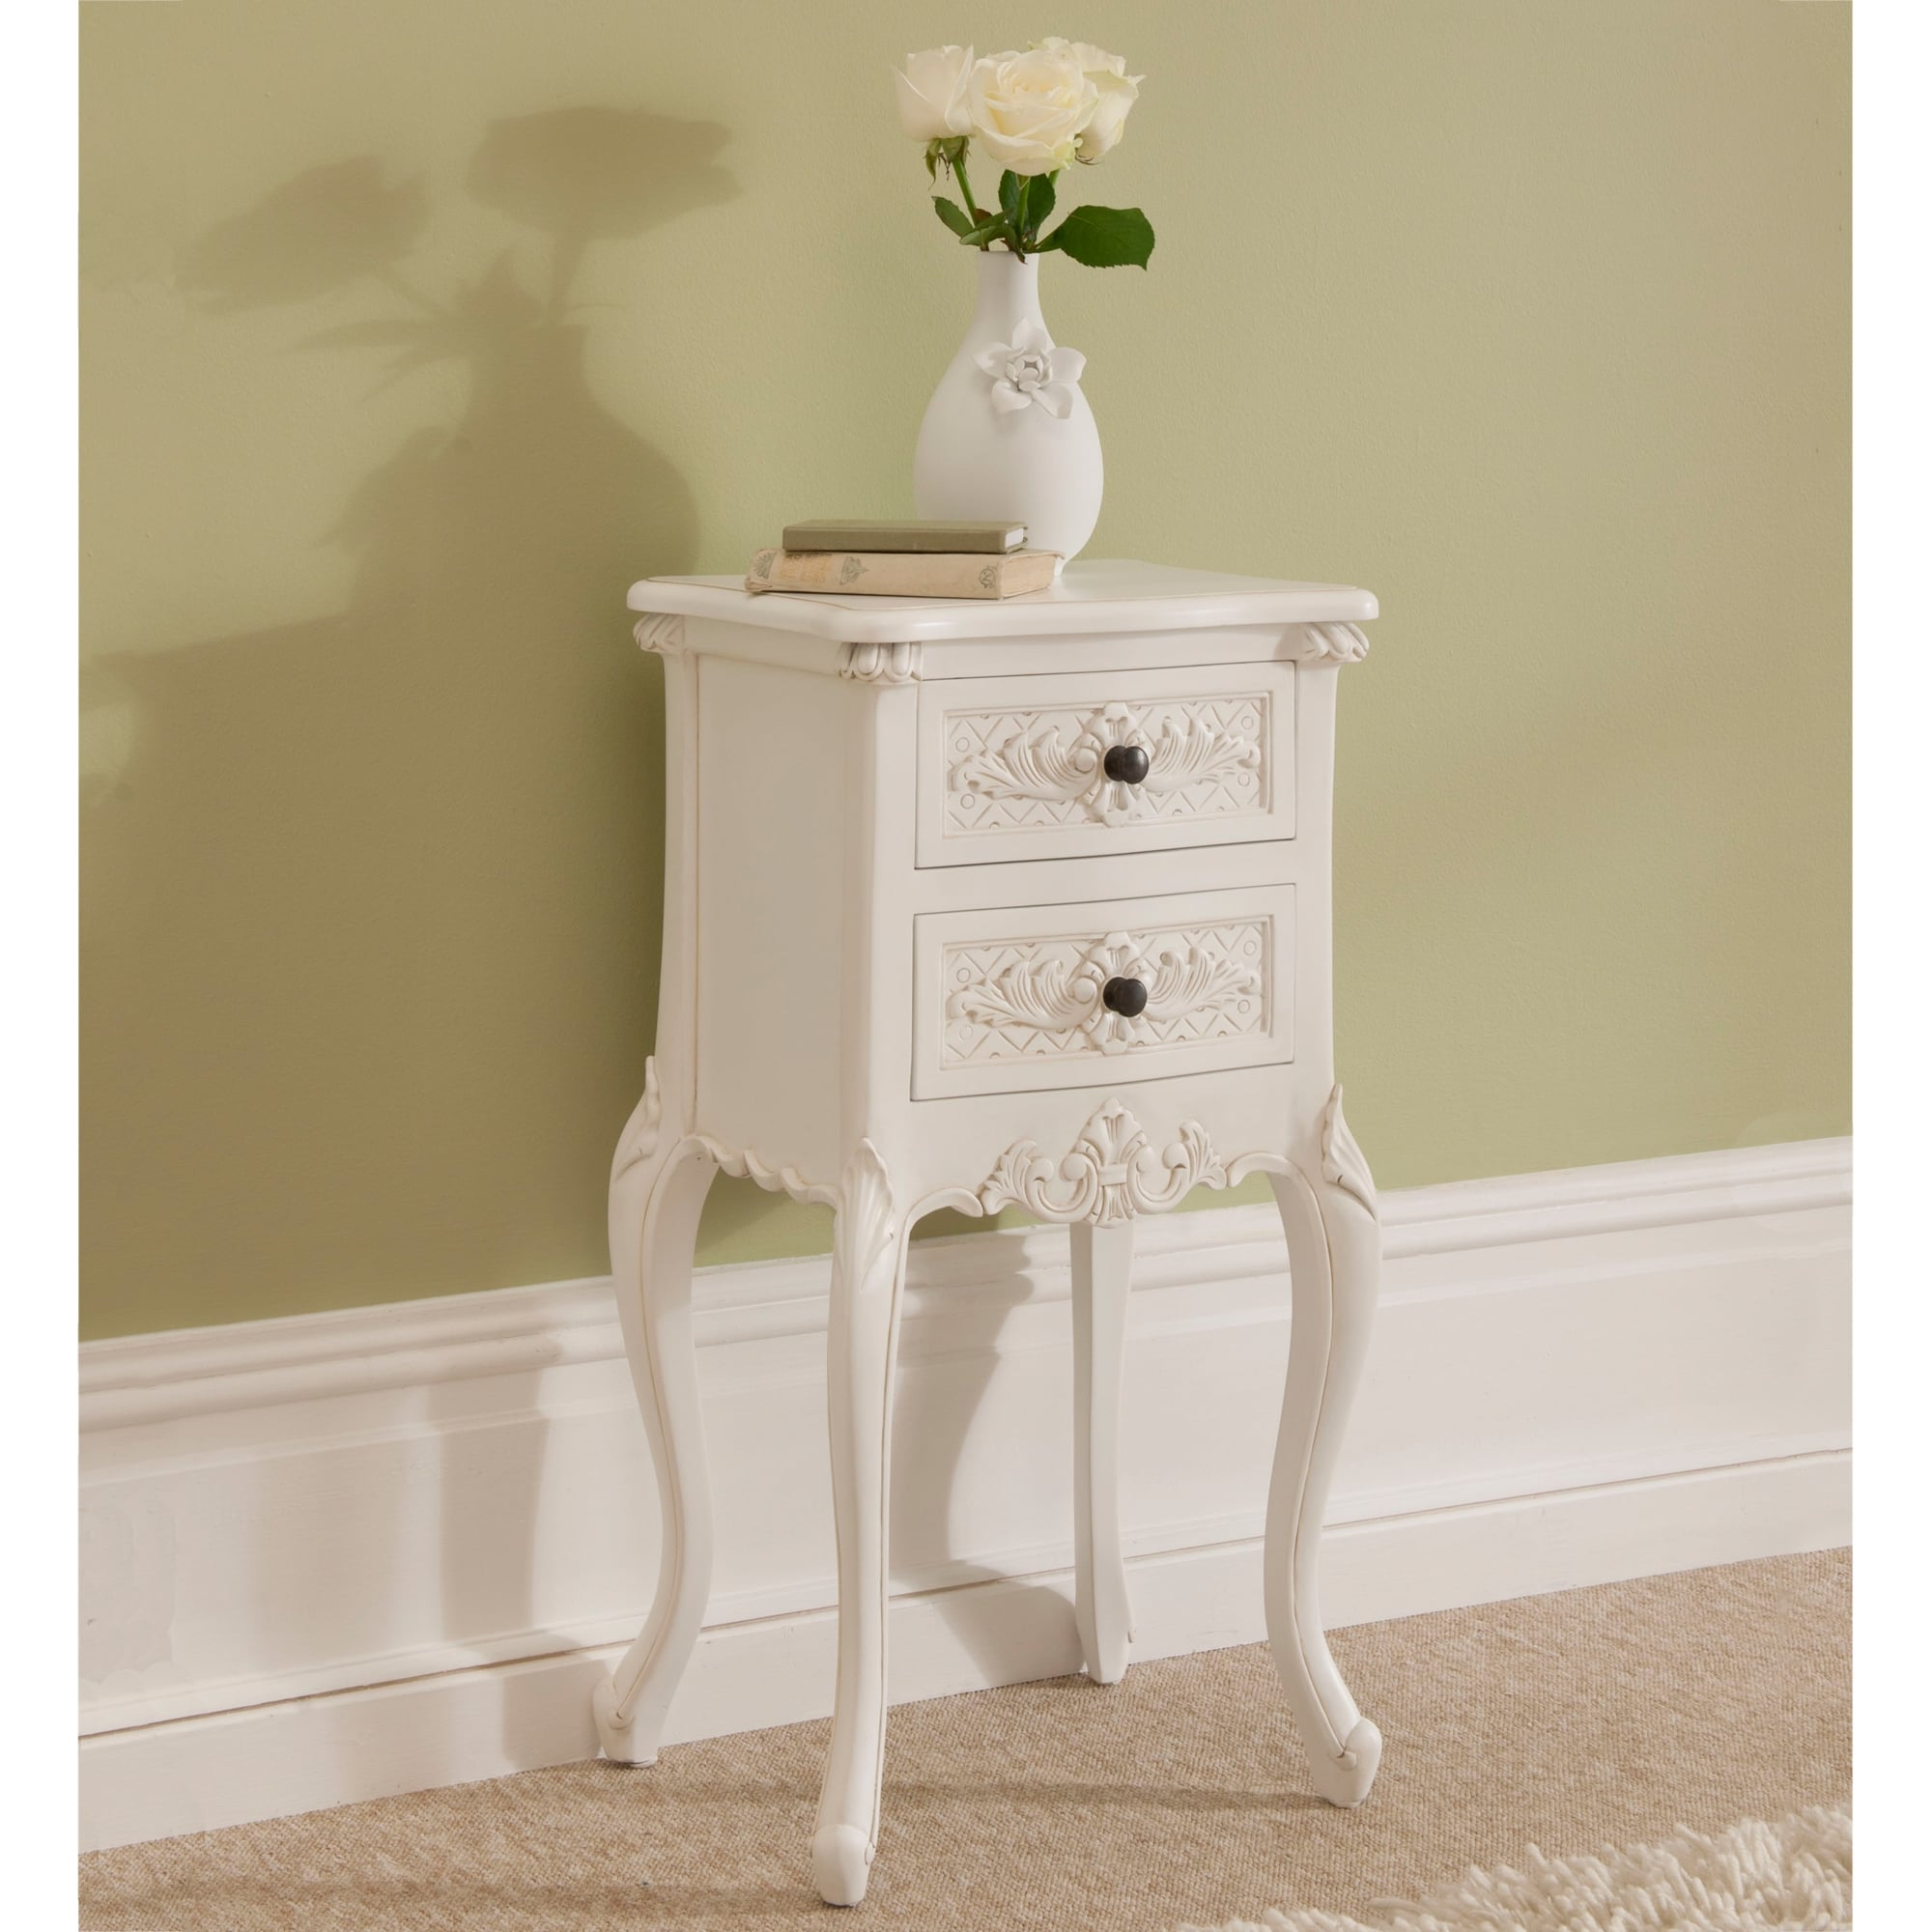 Rococo Shabby Chic Antique Style Bedside Table Shabby Chic Furniture